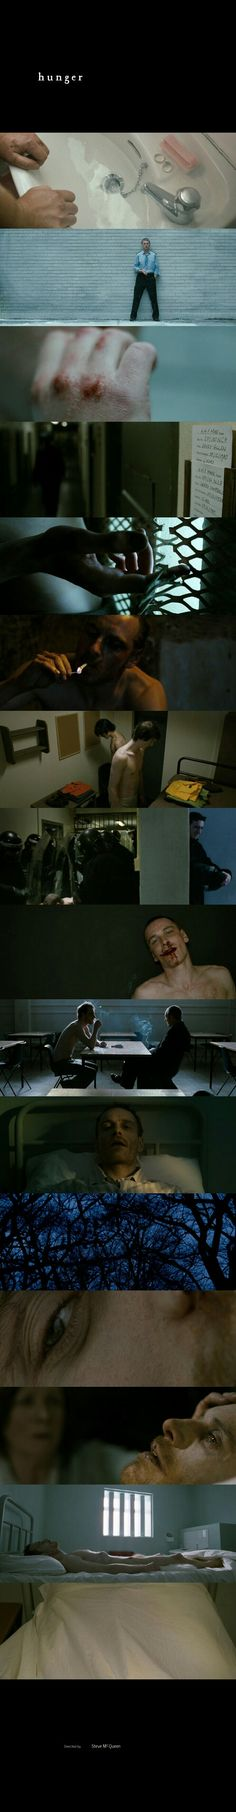 Hunger (2008) Directed by Steve McQueen. Starring Michael Fassbender in leading role.